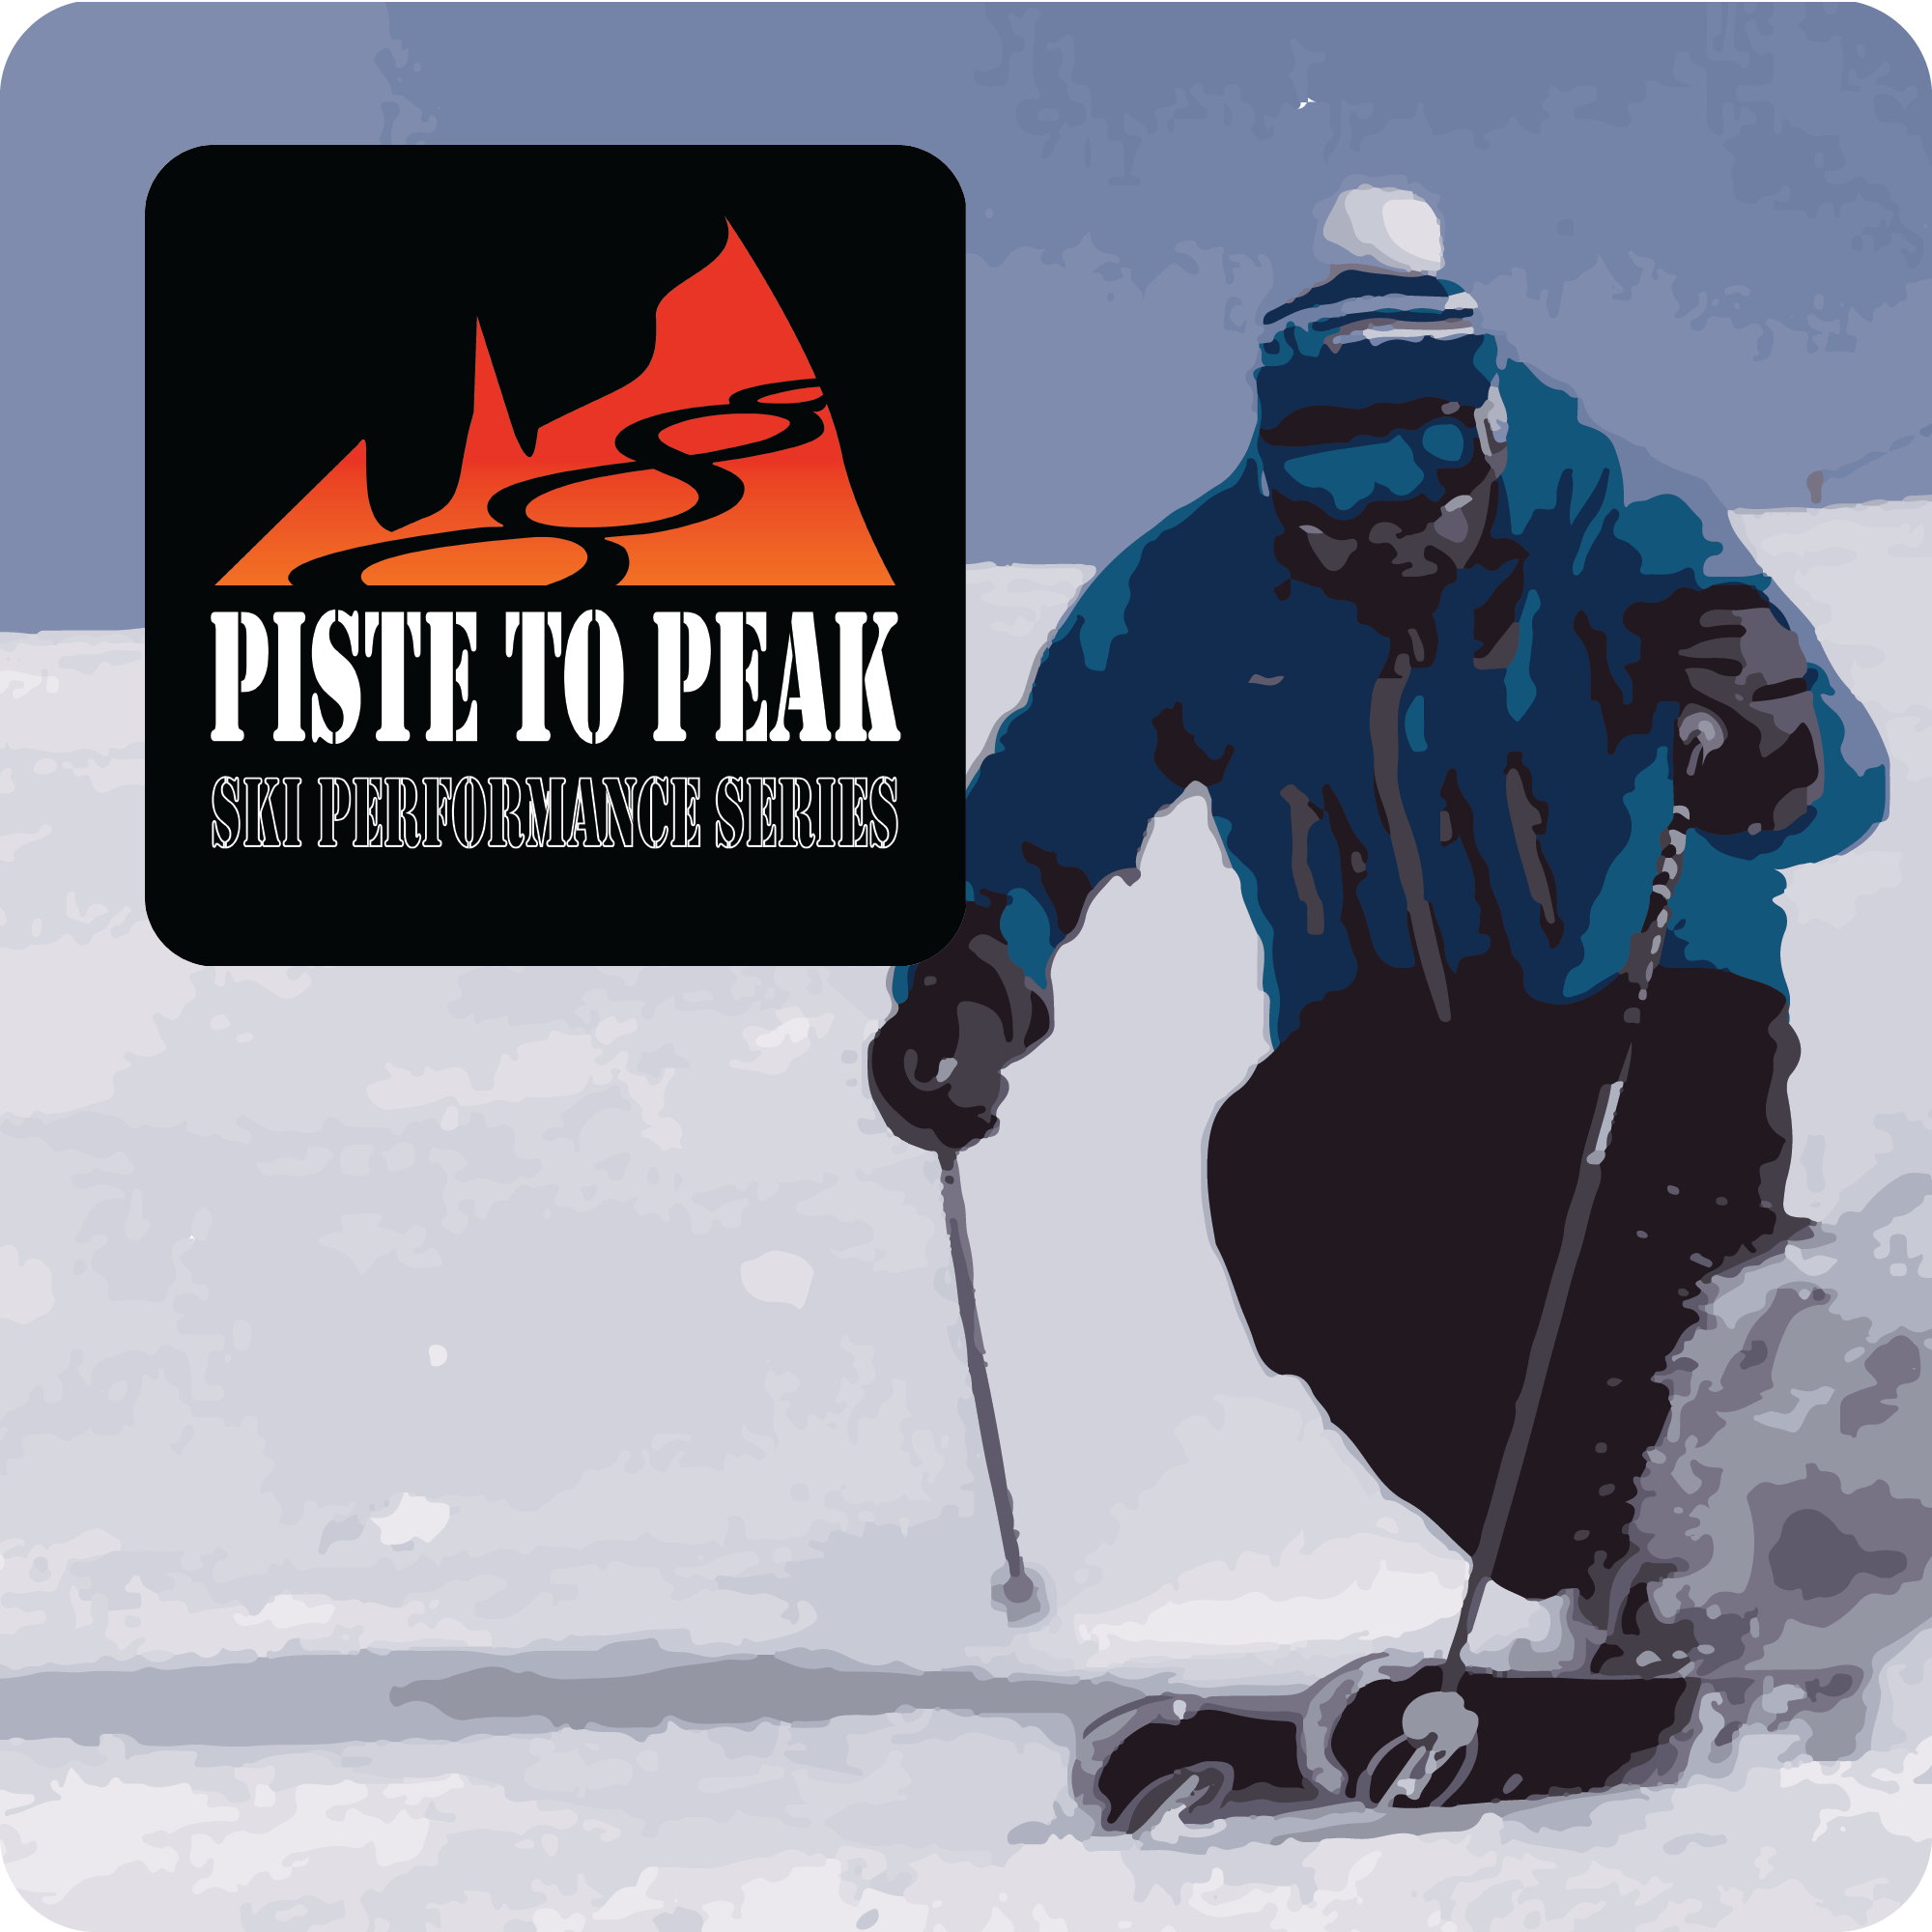 P2P1 - Piste to Peak Volume 1 - Skiing Fundamentals